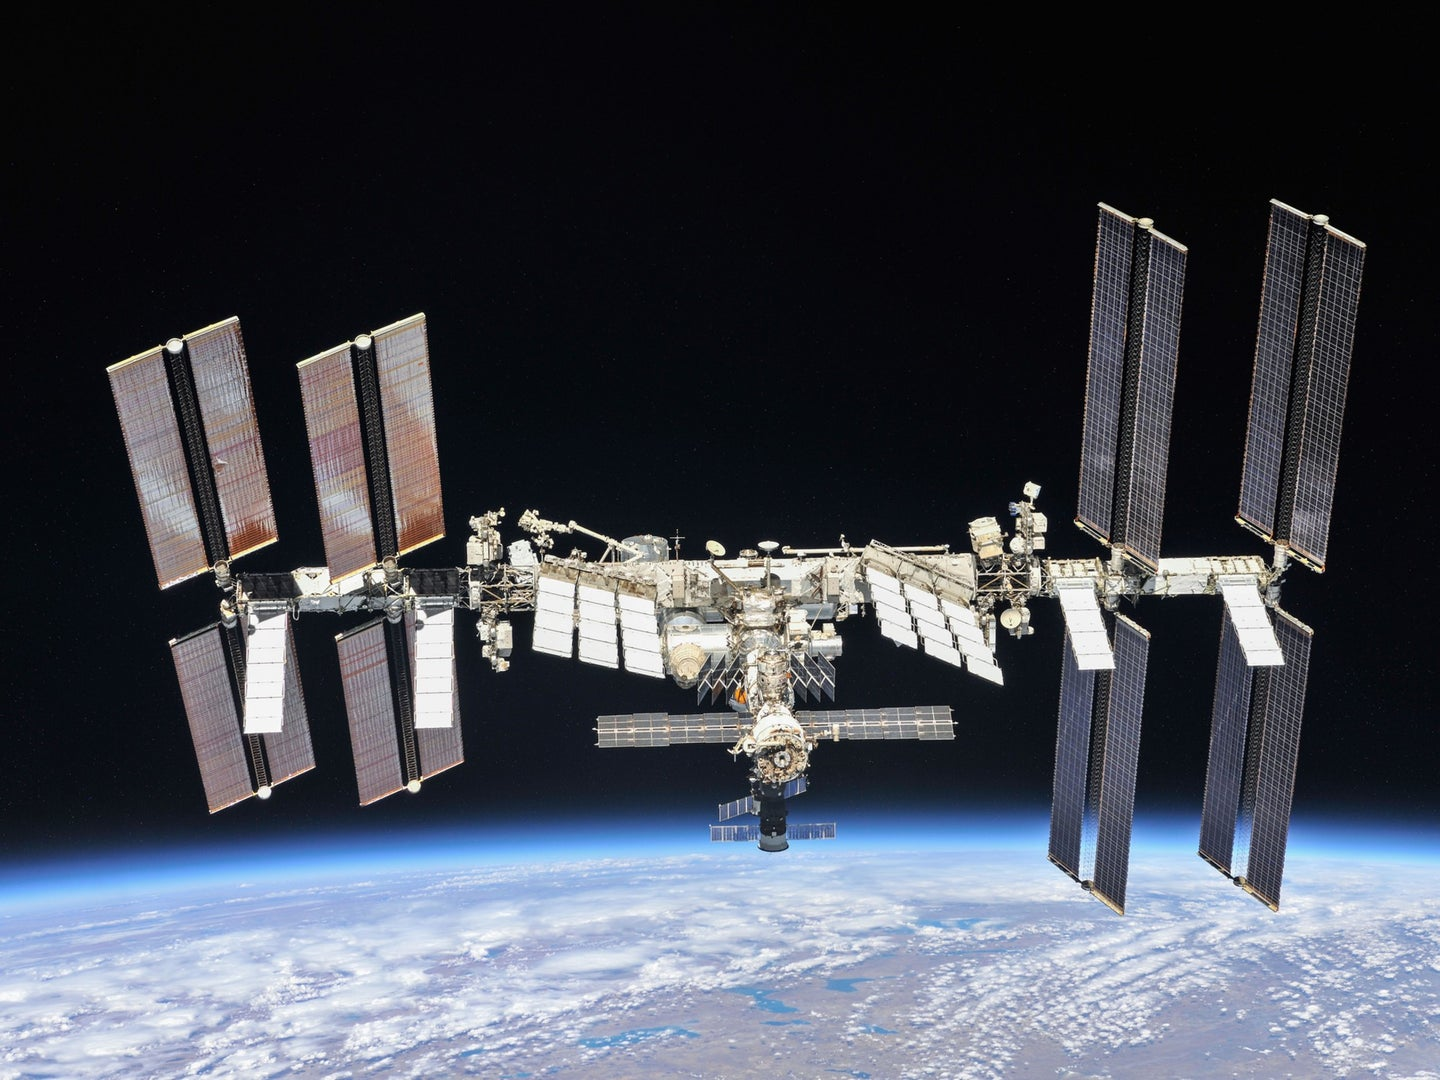 A photograph of the International Space Station floating 250 miles above the Earth.